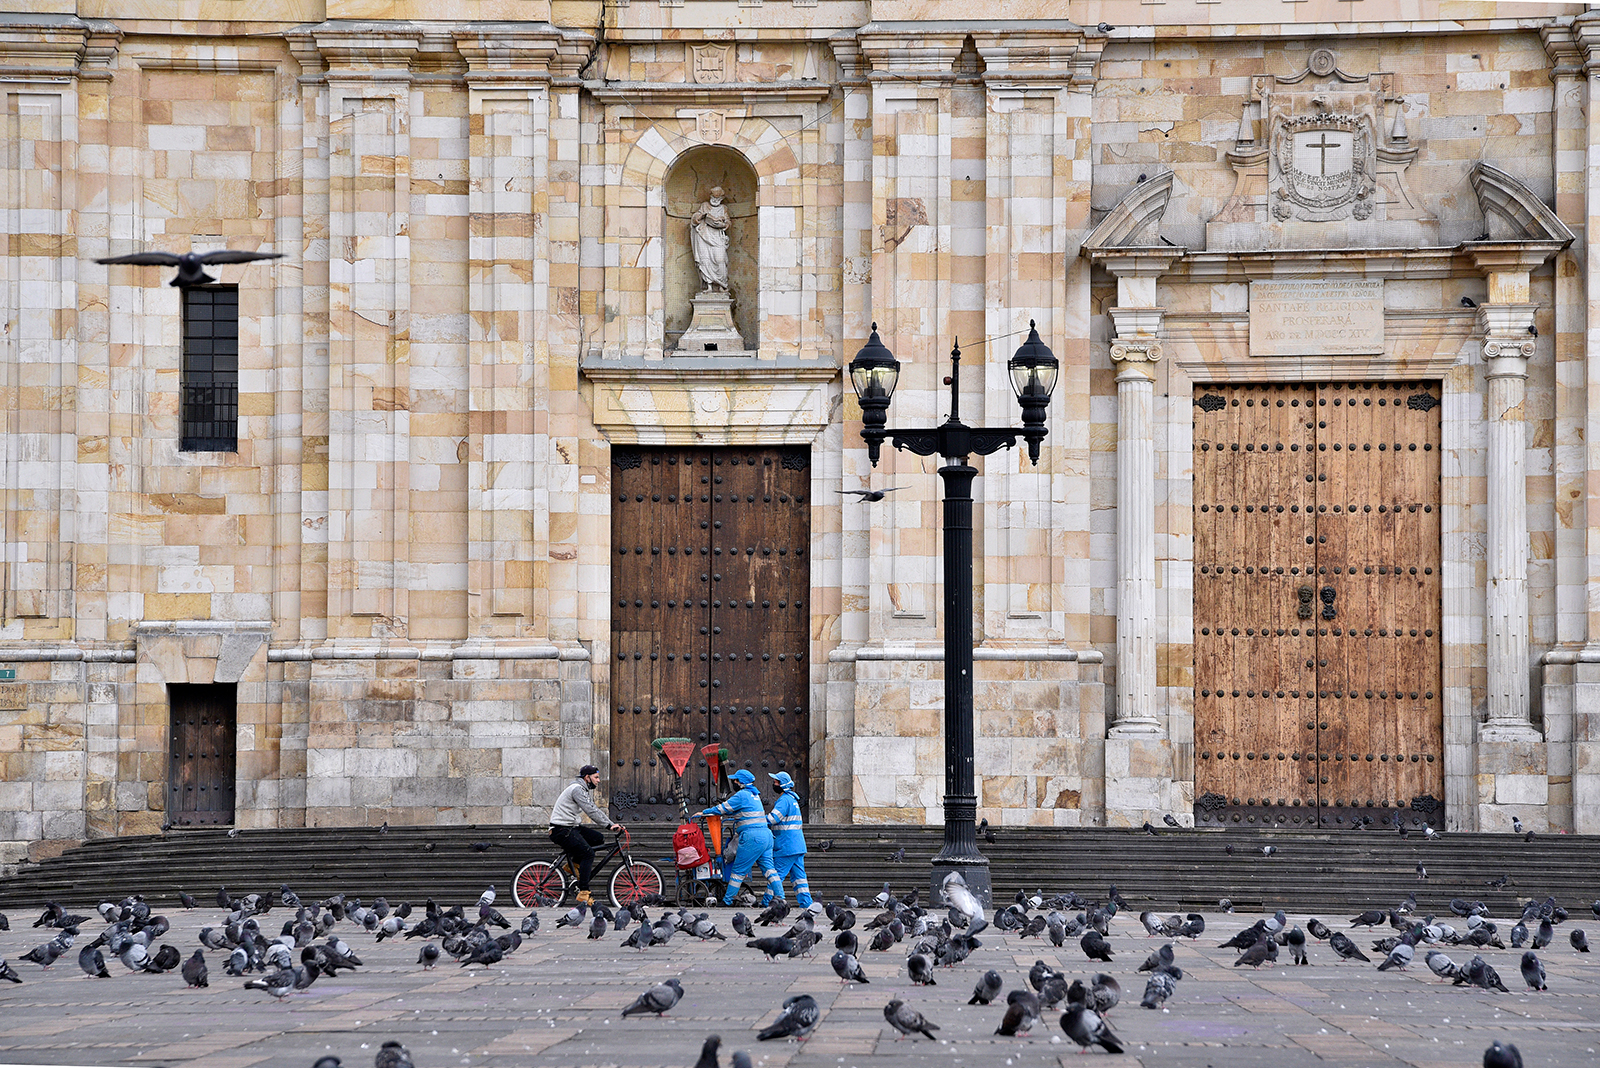 A near empty Plaza de Bolivar is seen during a reinstated lockdown in downtown Bogota, Colombia, on April 10.